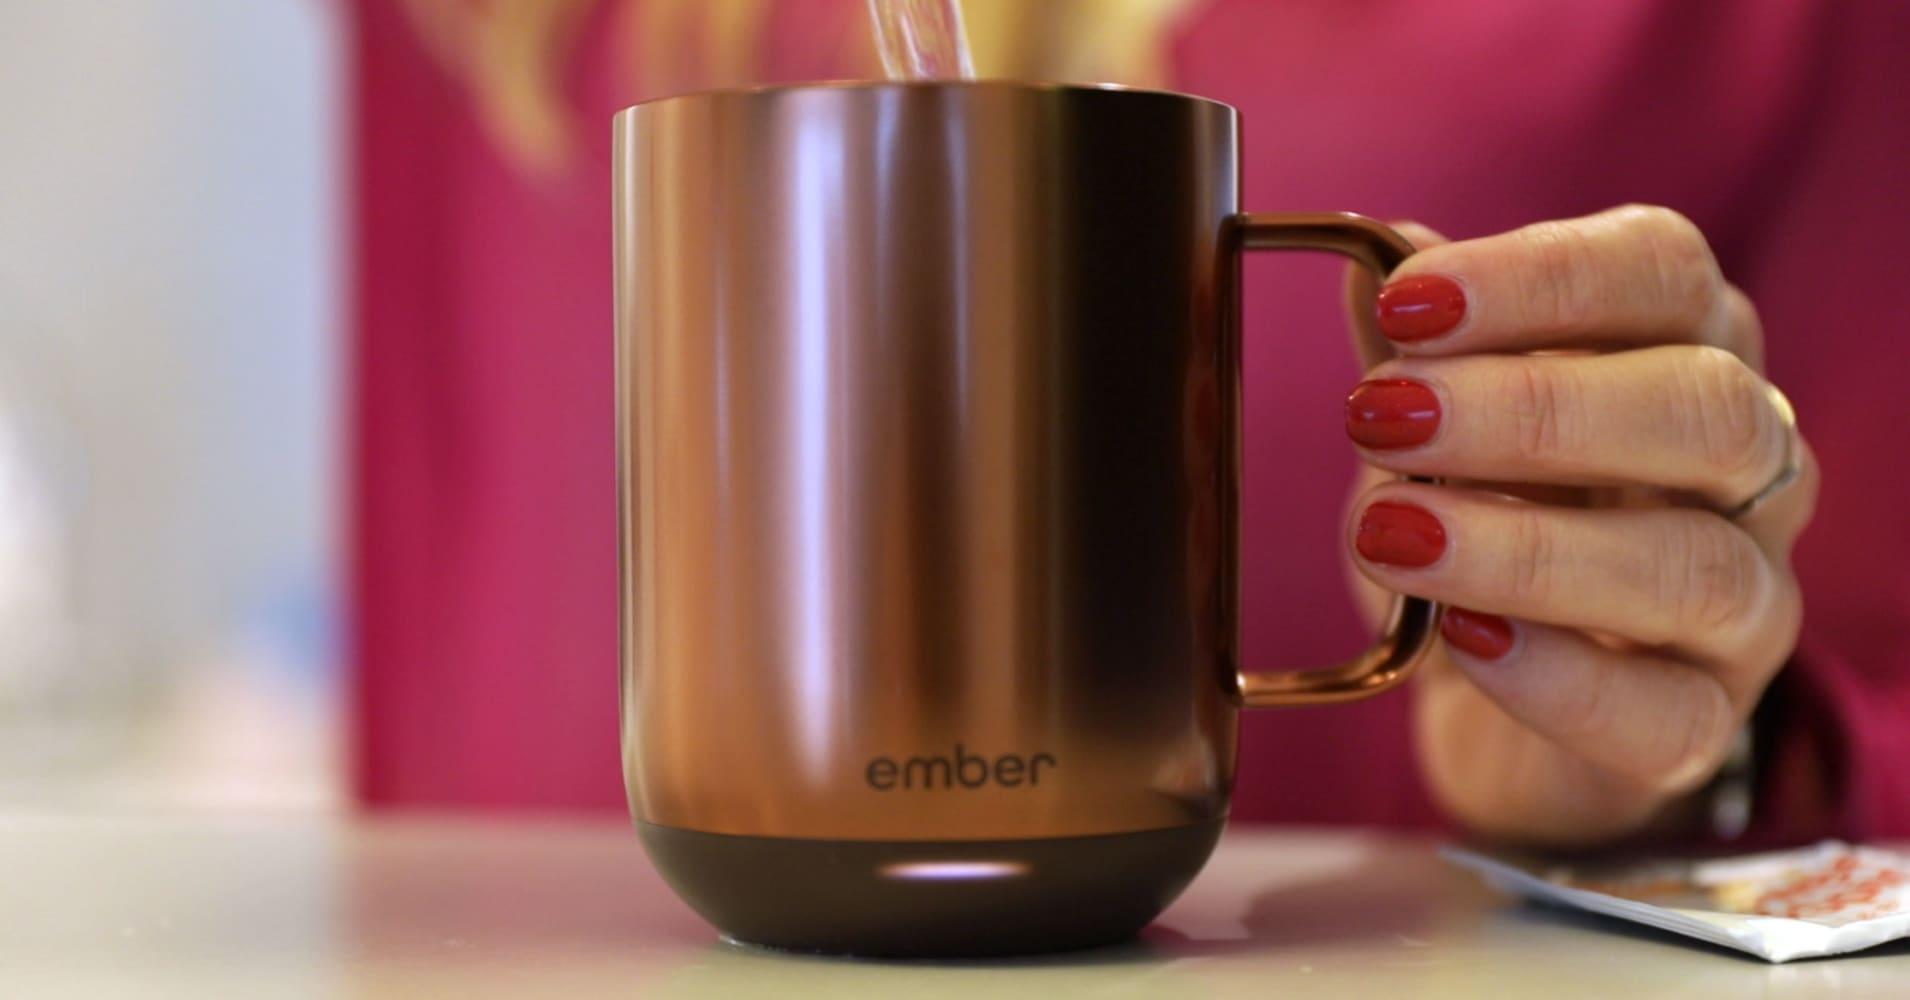 This smart mug keeps your drink at the perfect temperature, but it will cost you a hefty $80